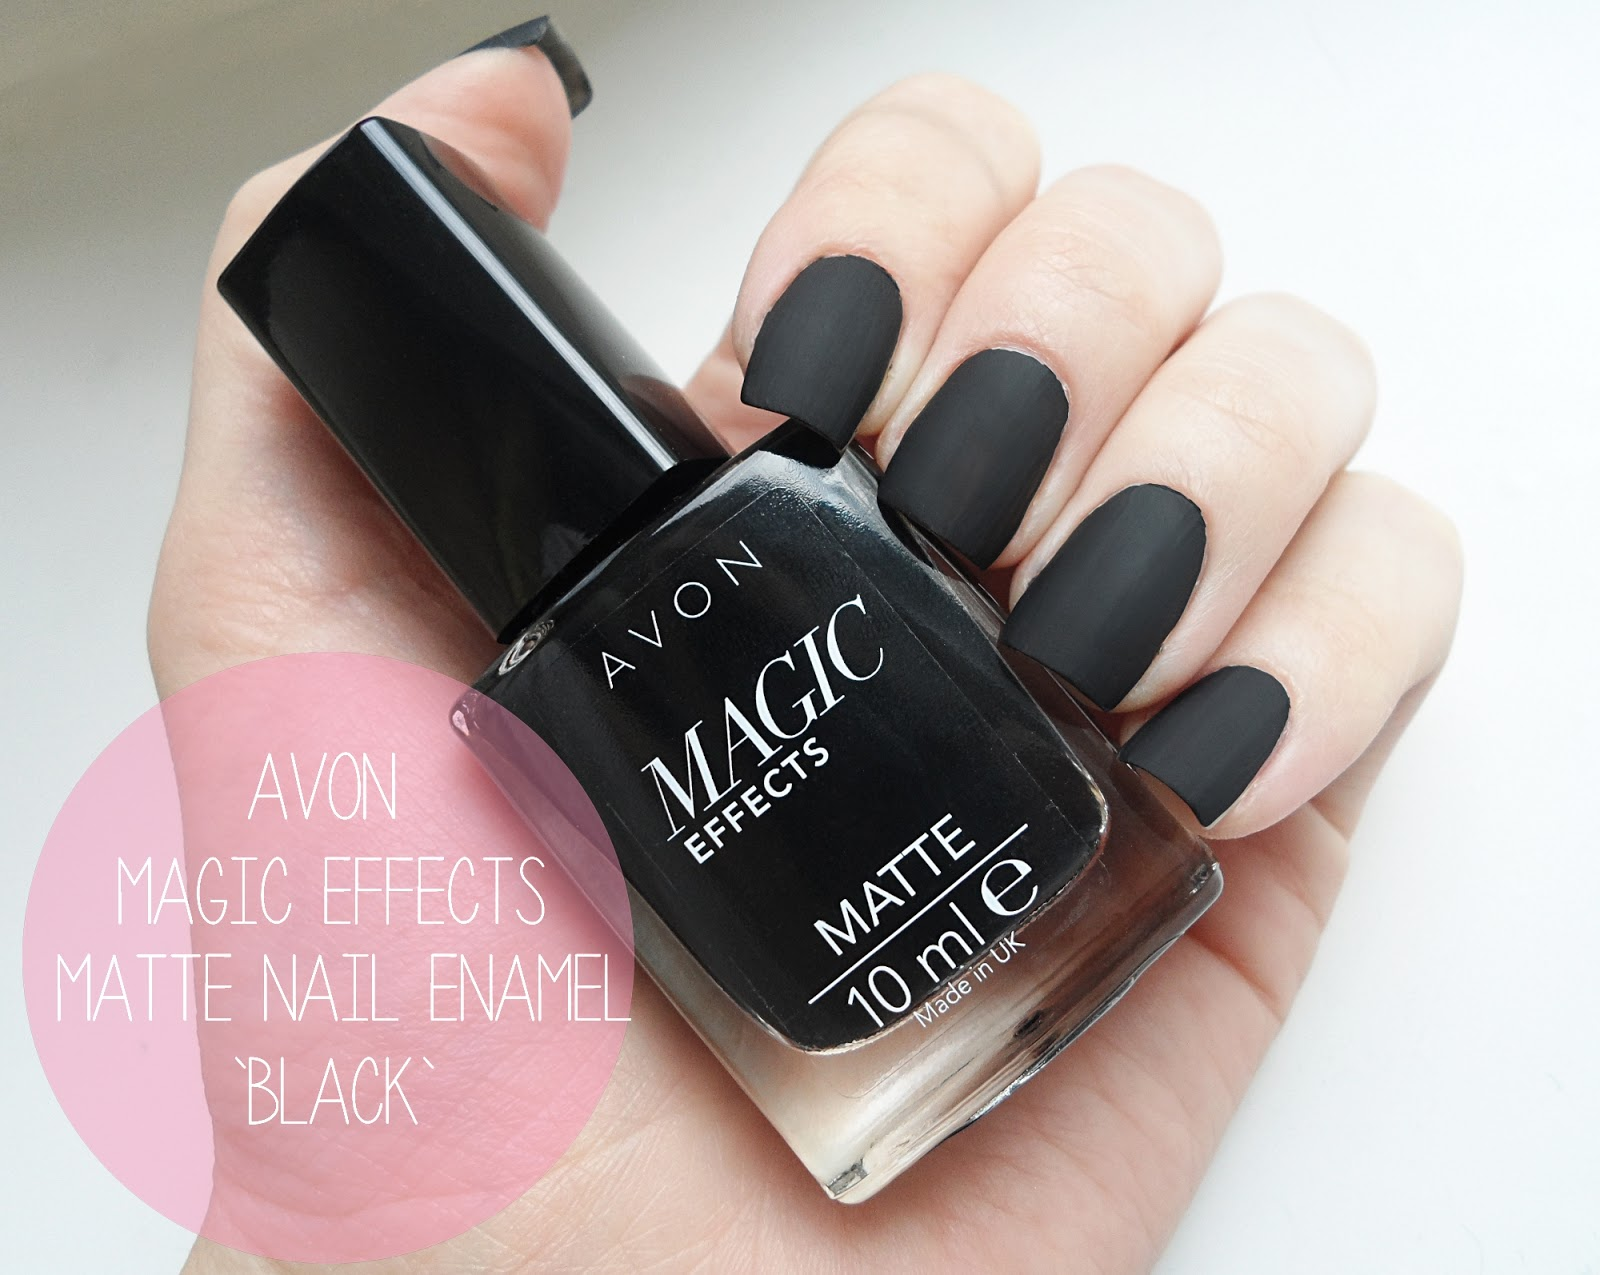 AVON MAGIC EFFECTS MATTE NAIL ENAMEL | REVIEW & SWATCHES - REVIEWS ...